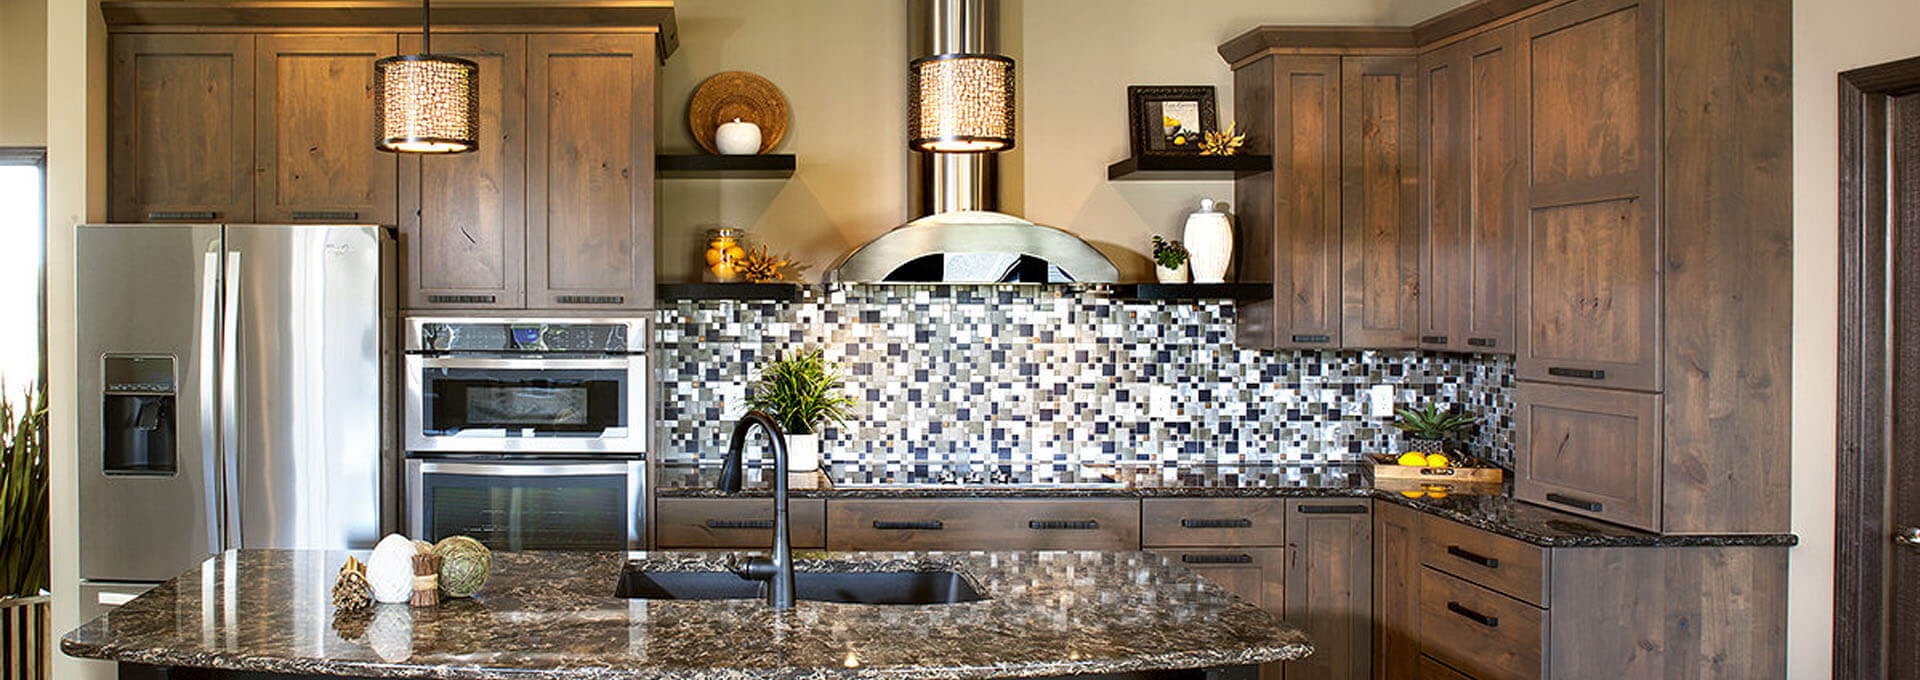 wood kitchen cabinets with colorful backsplash